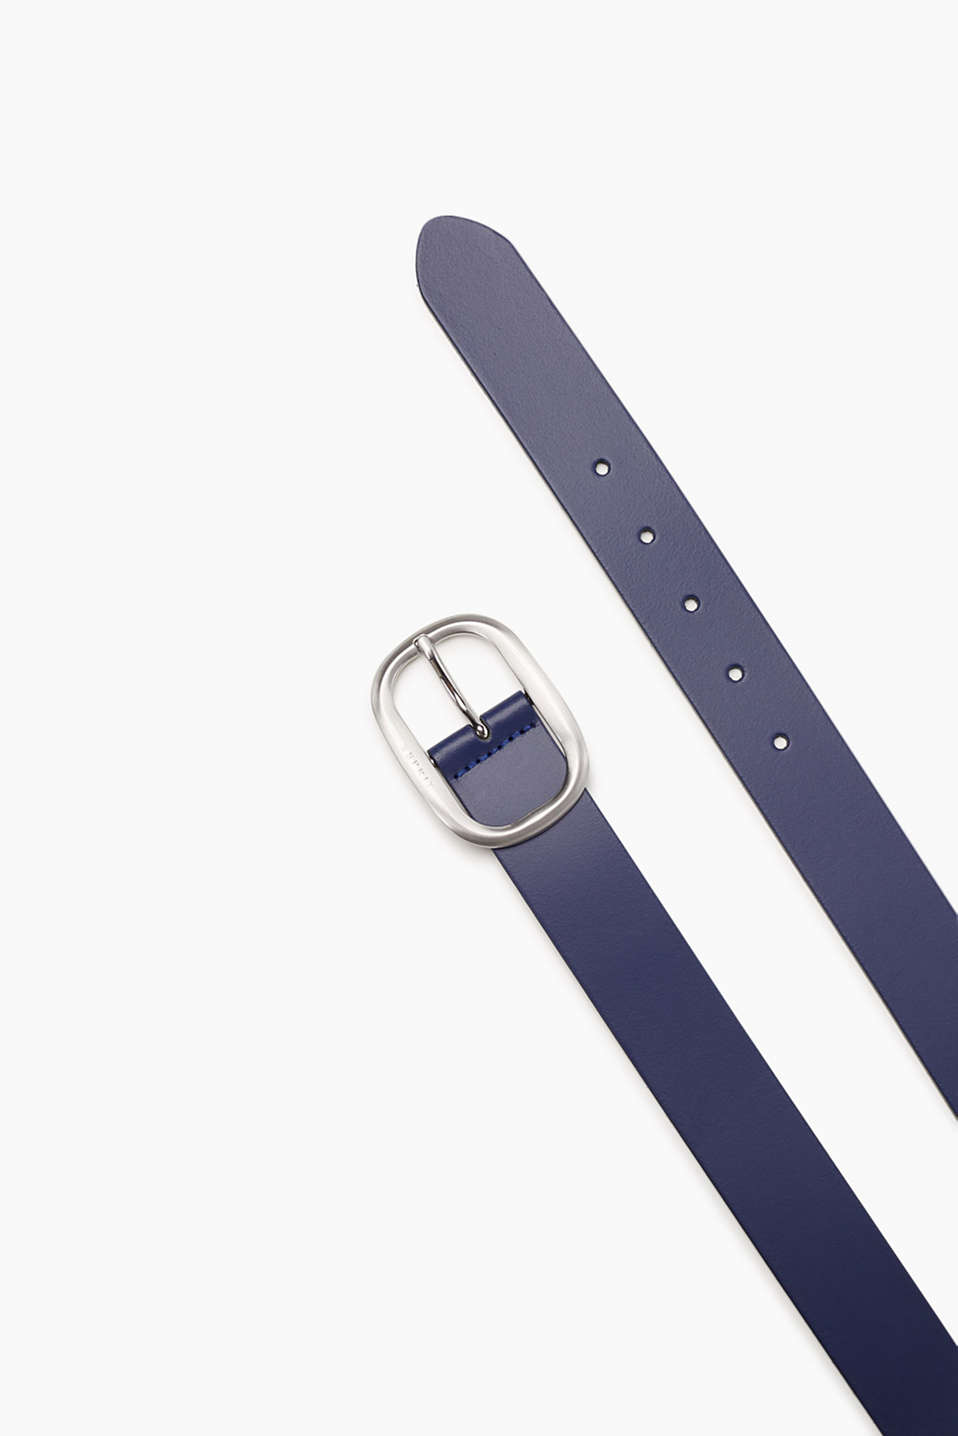 Elegant basic belt made of smooth leather with a satined metal buckle